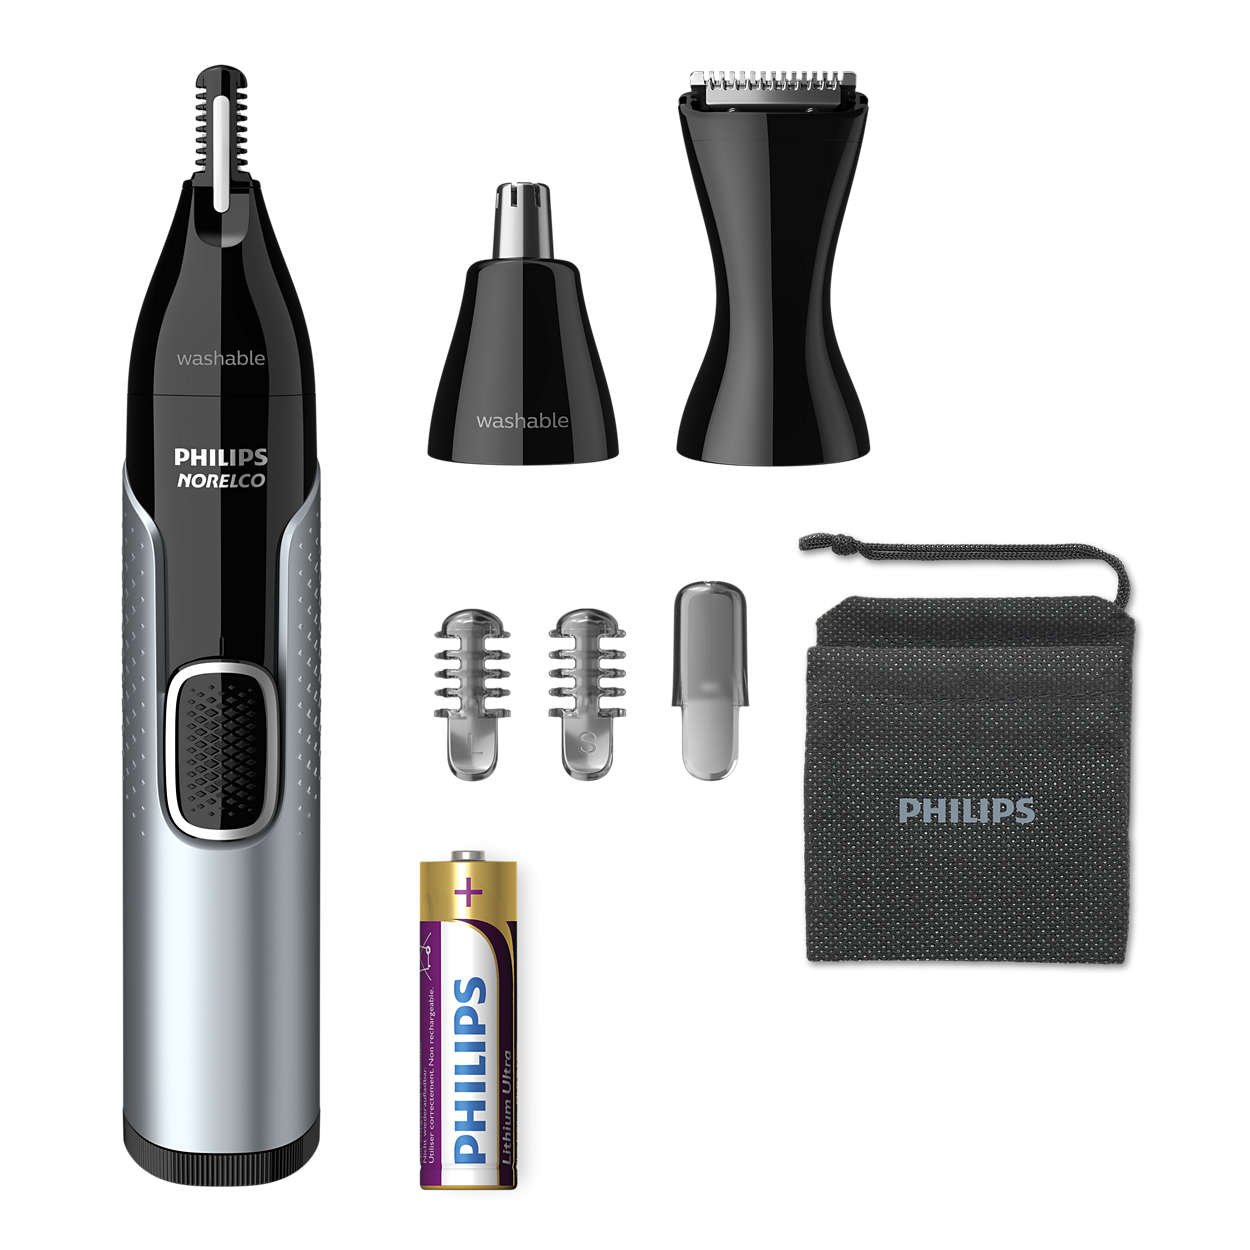 Premium precision trimming kit